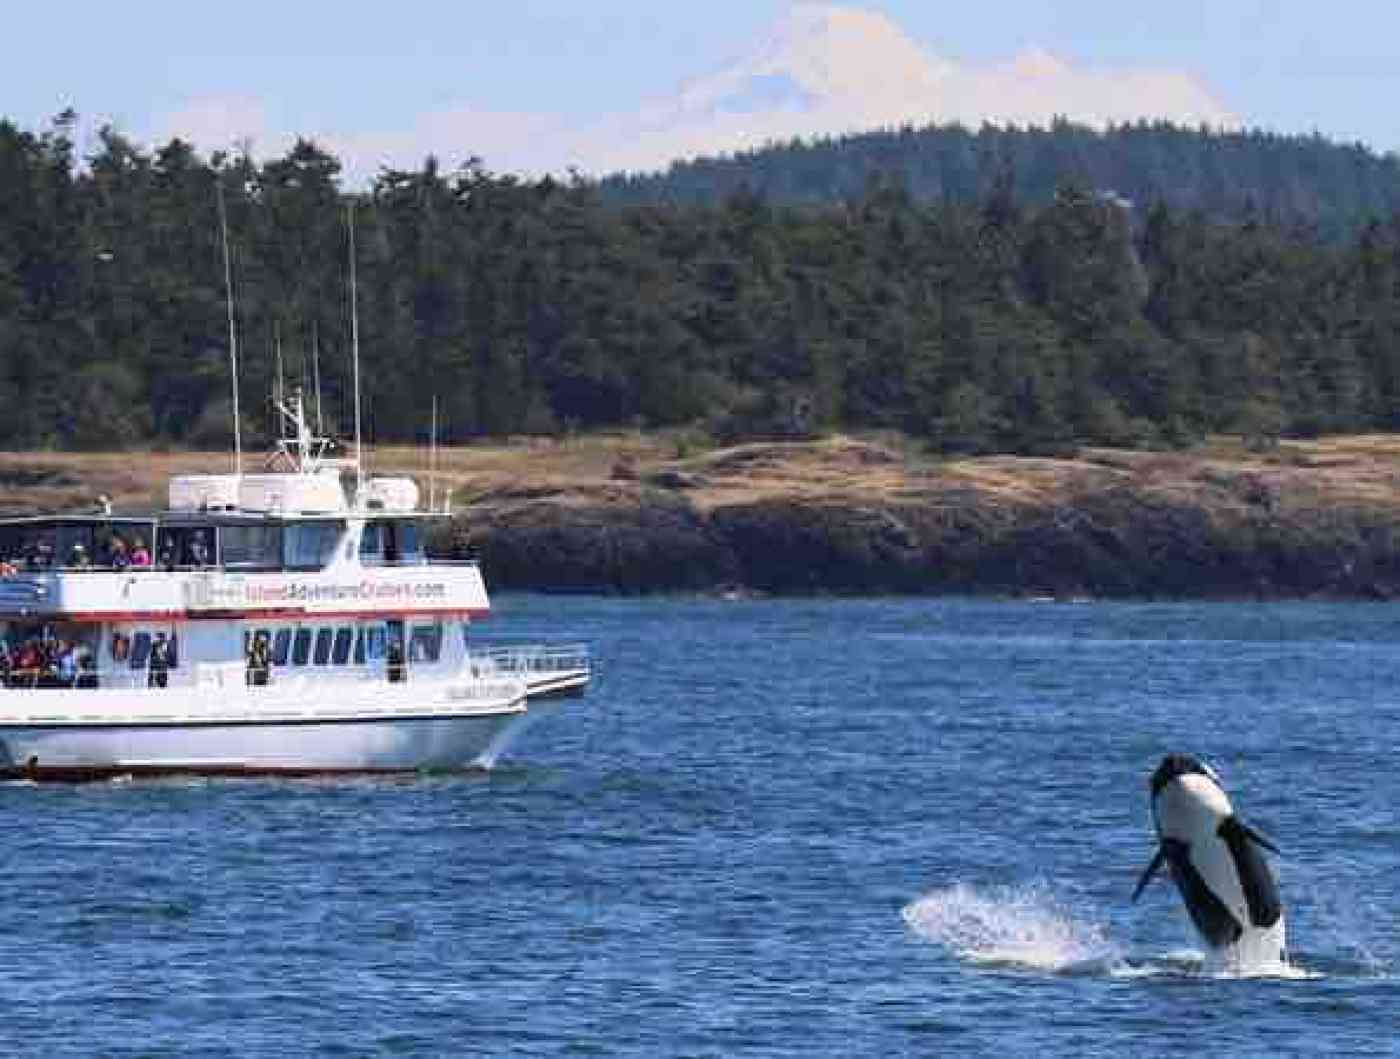 Best Whale Watching Boats in Washington State